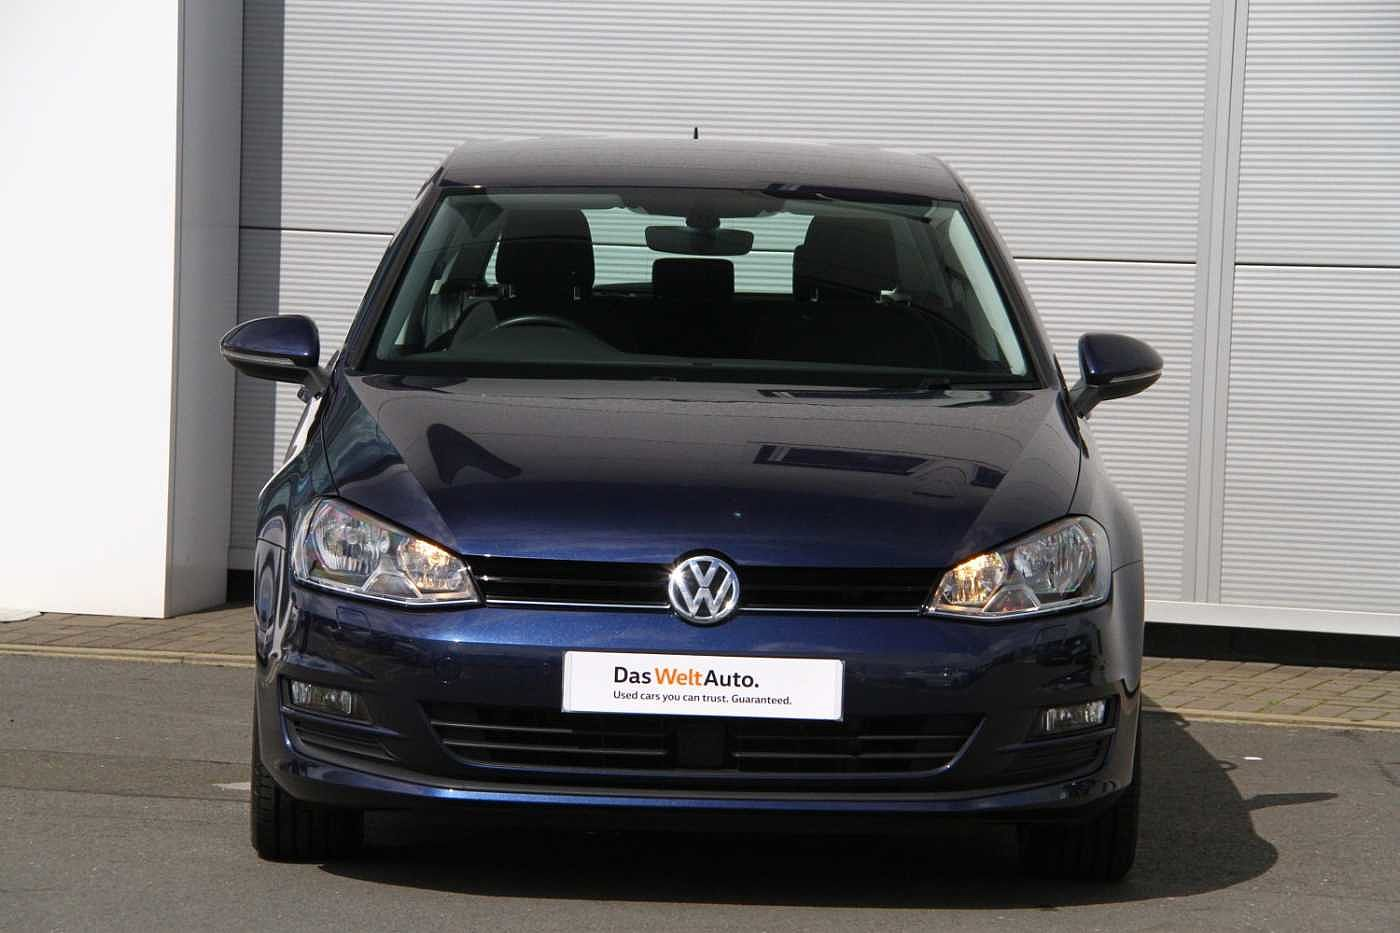 Volkswagen Golf for sale